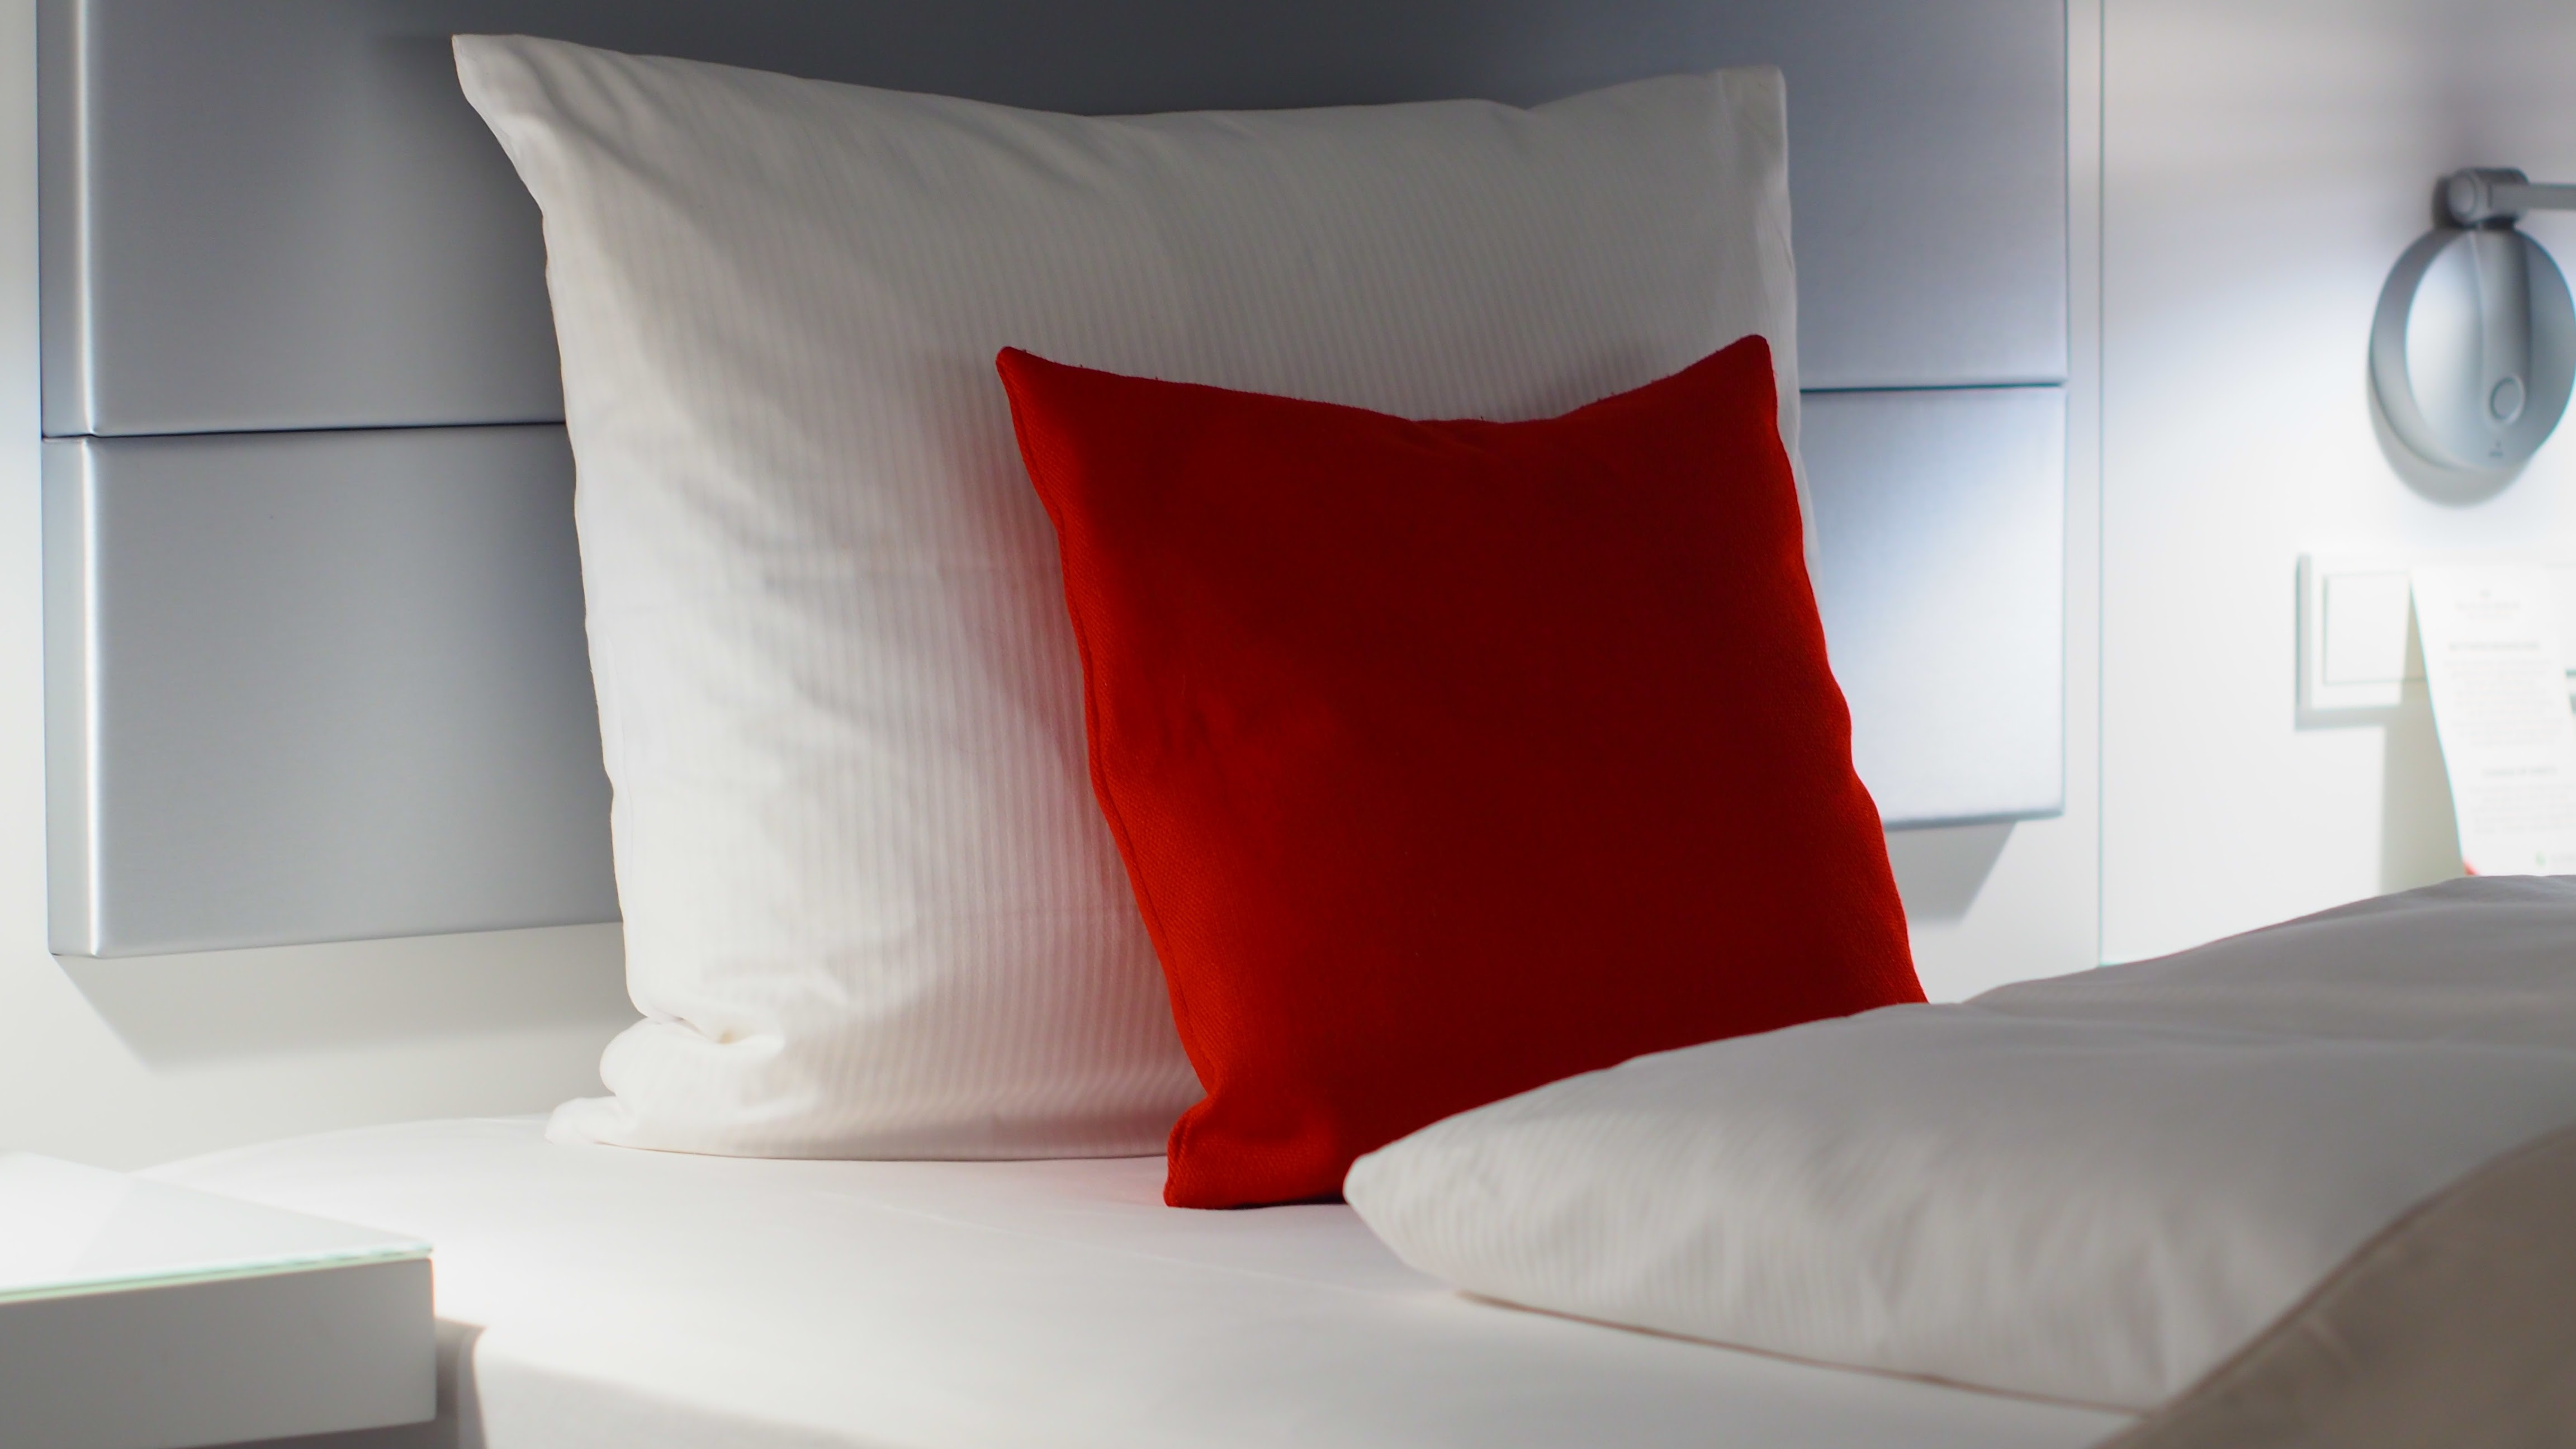 Red and White Bed Pillows, Bed, Room, Red, Pillows, HQ Photo